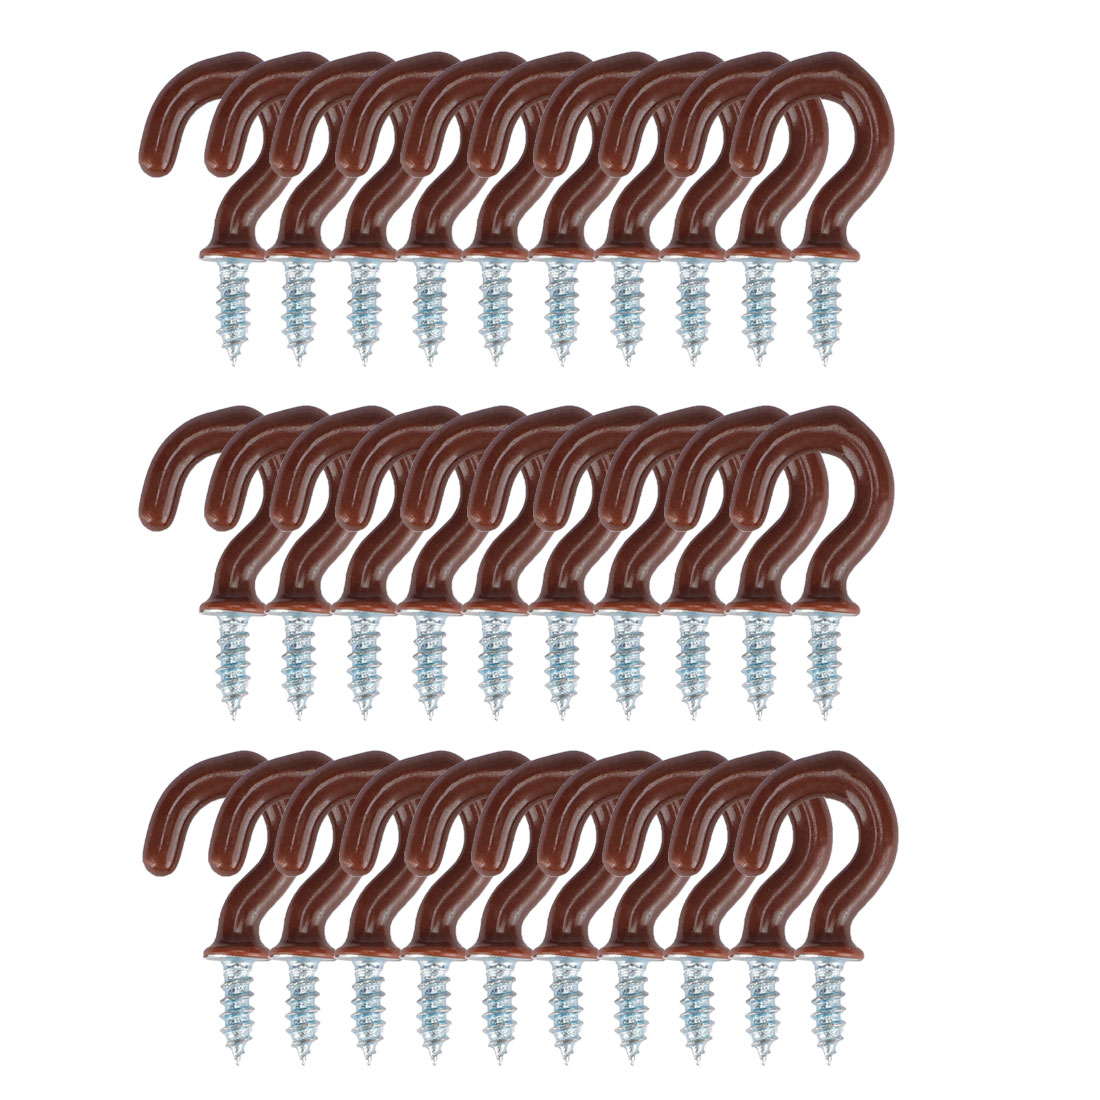 30pcs Cup Hooks 1/2 Inch Metal with Vinyl Coated Holder Screw in Hanger Brown